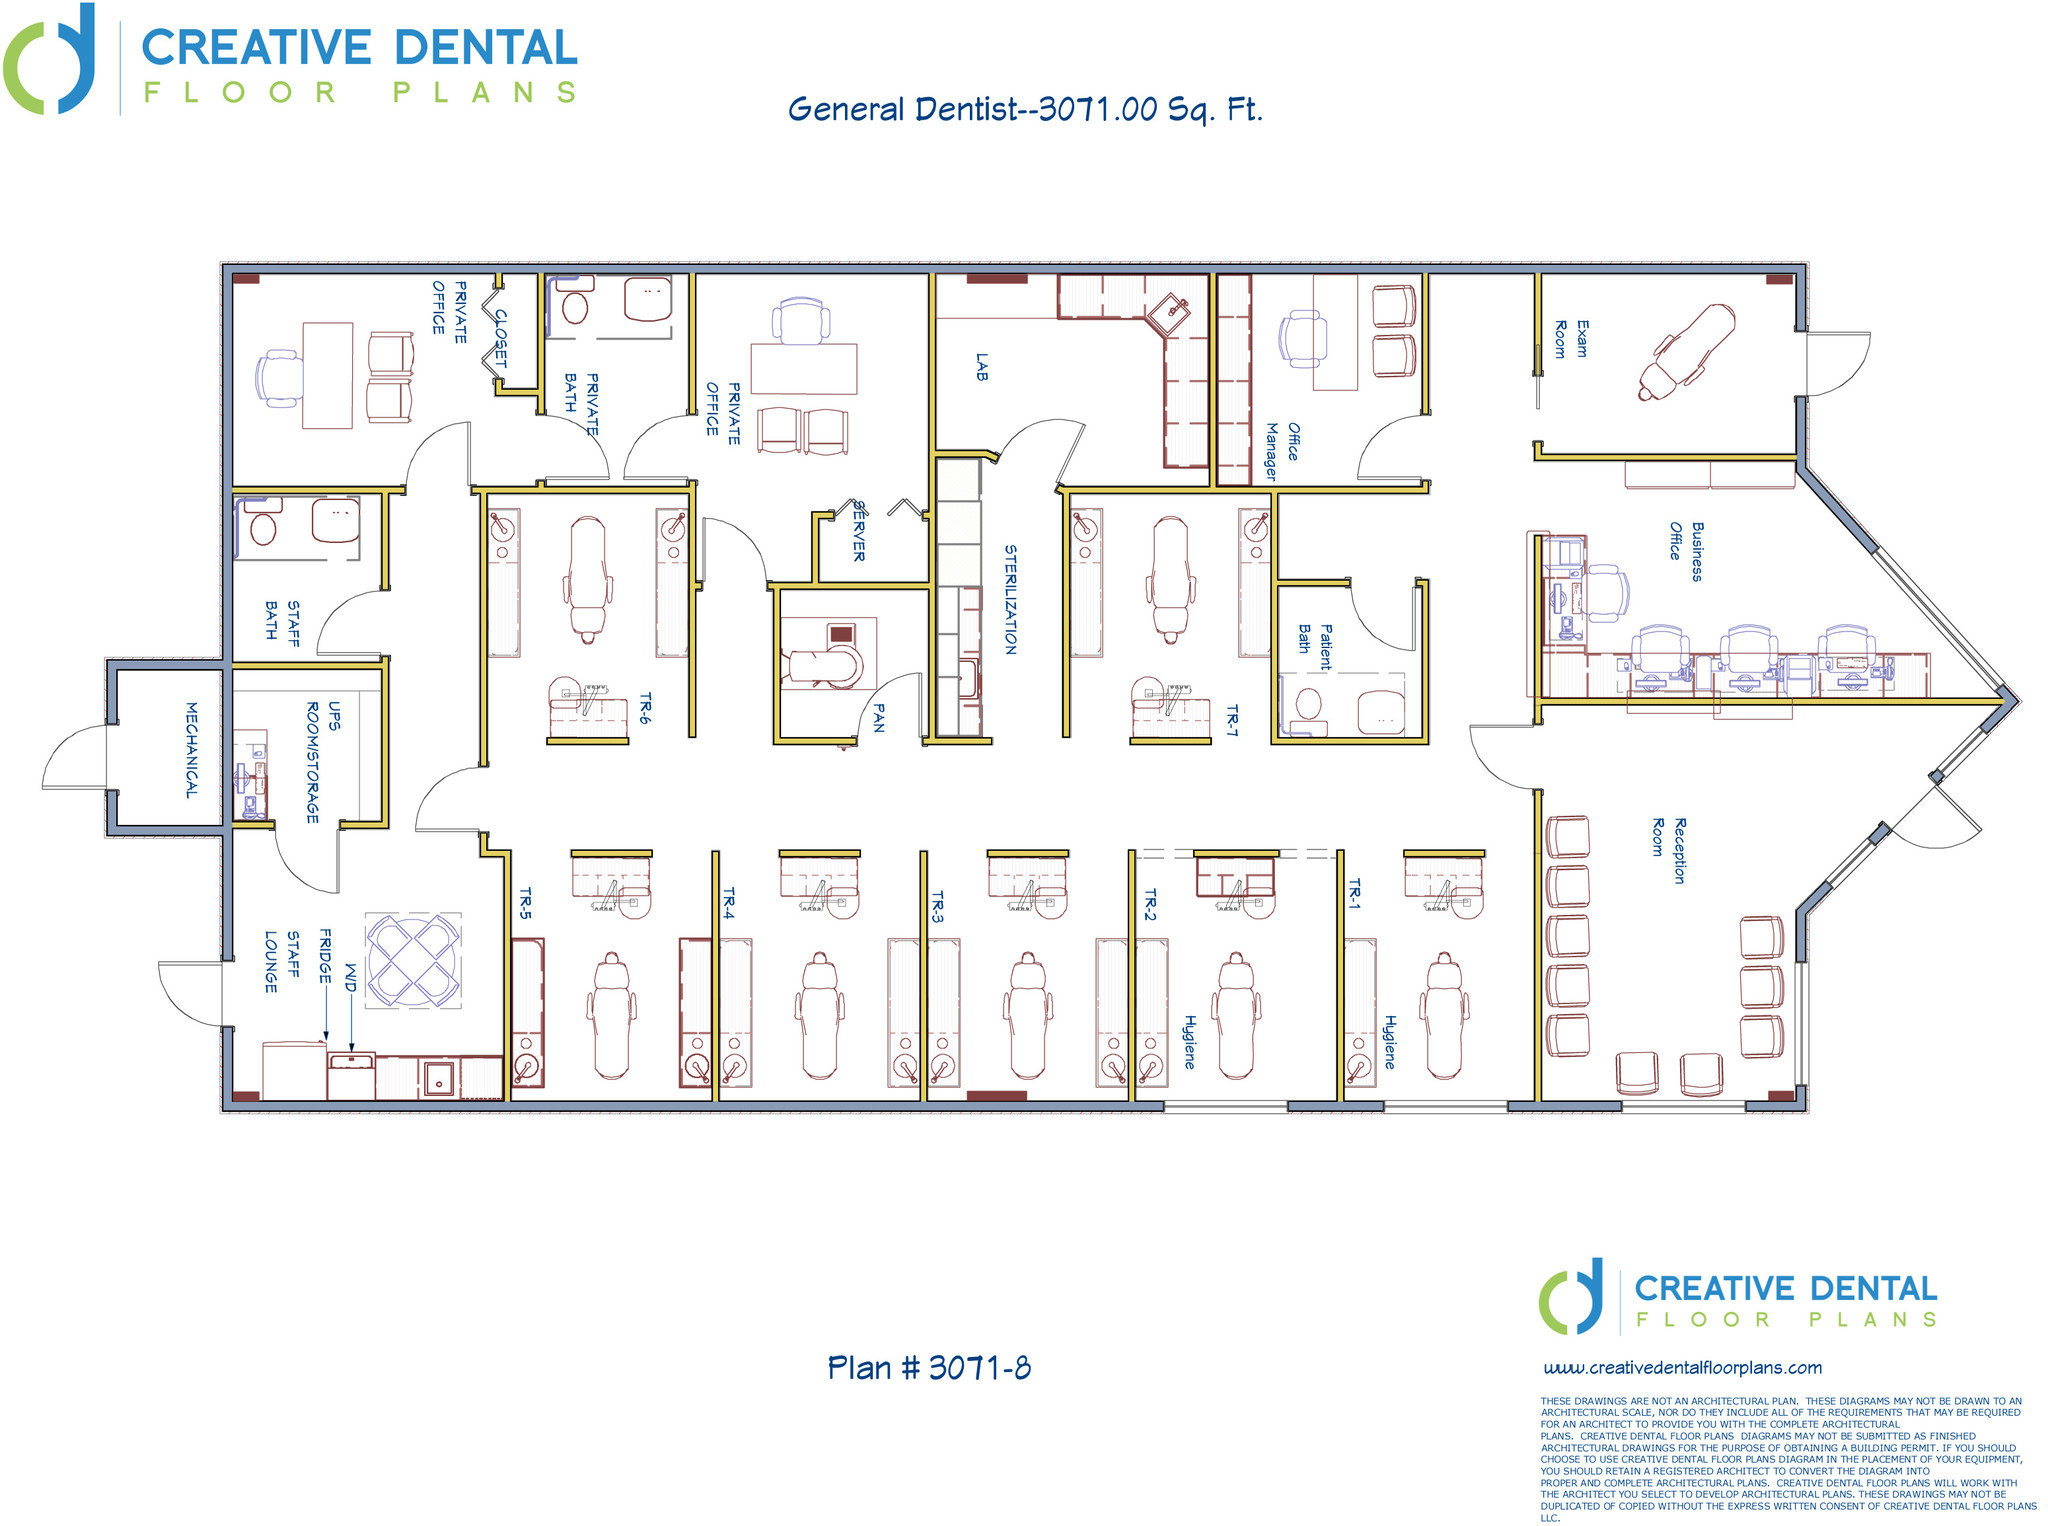 Townhouse Blueprints Creative Dental Floor Plans Strip Mall Floor Plans